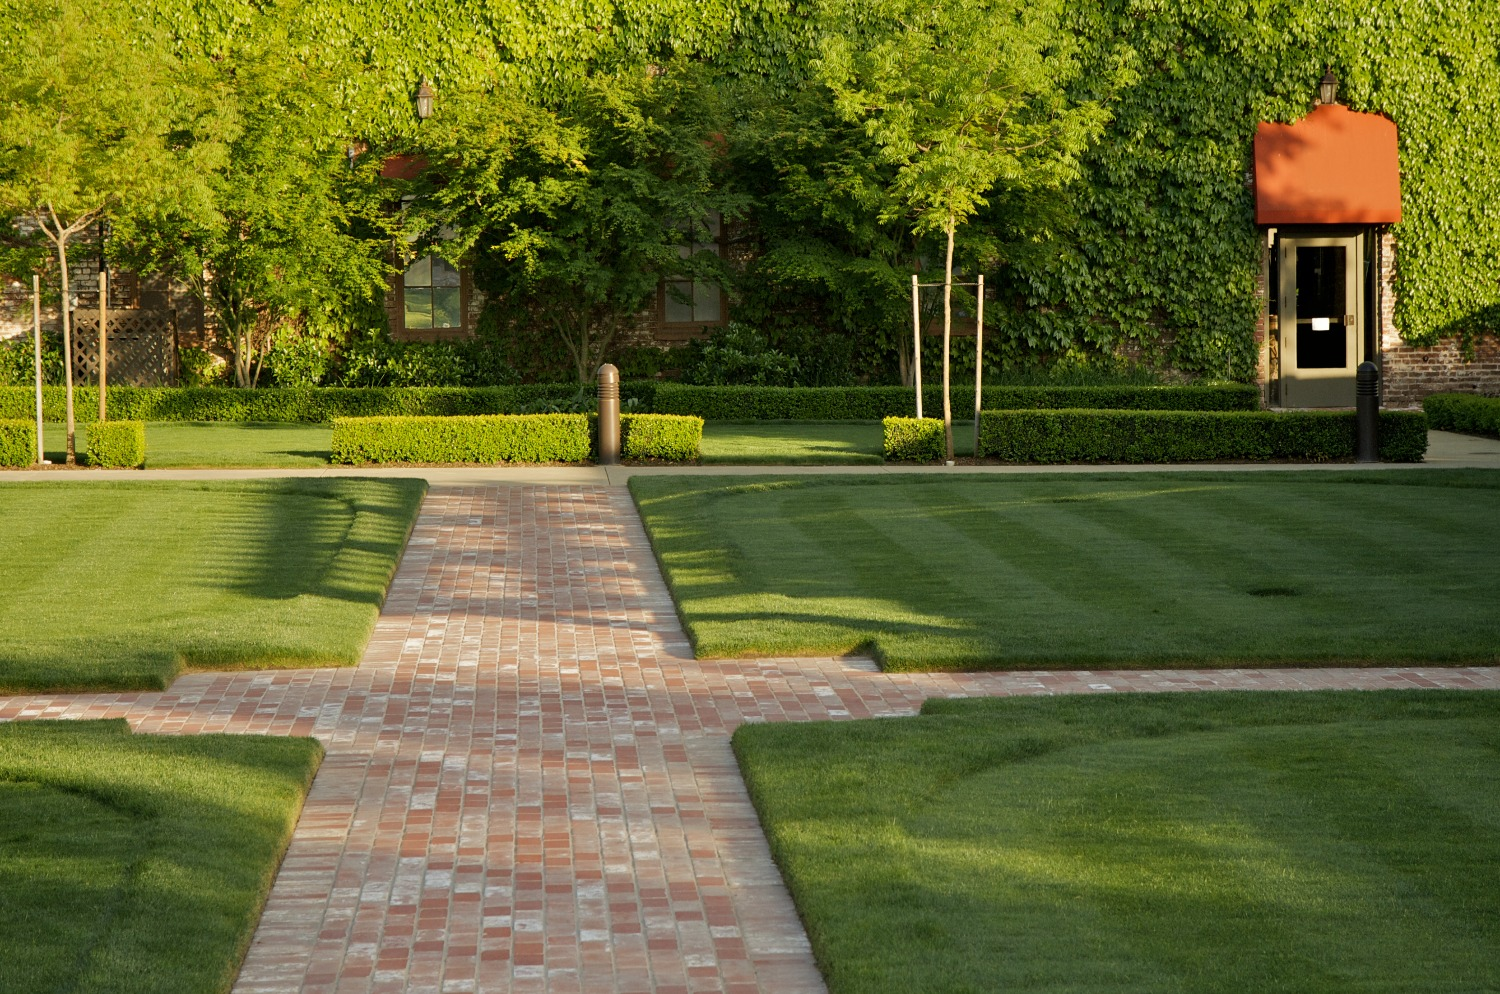 courtyard lawn care in dallas tx